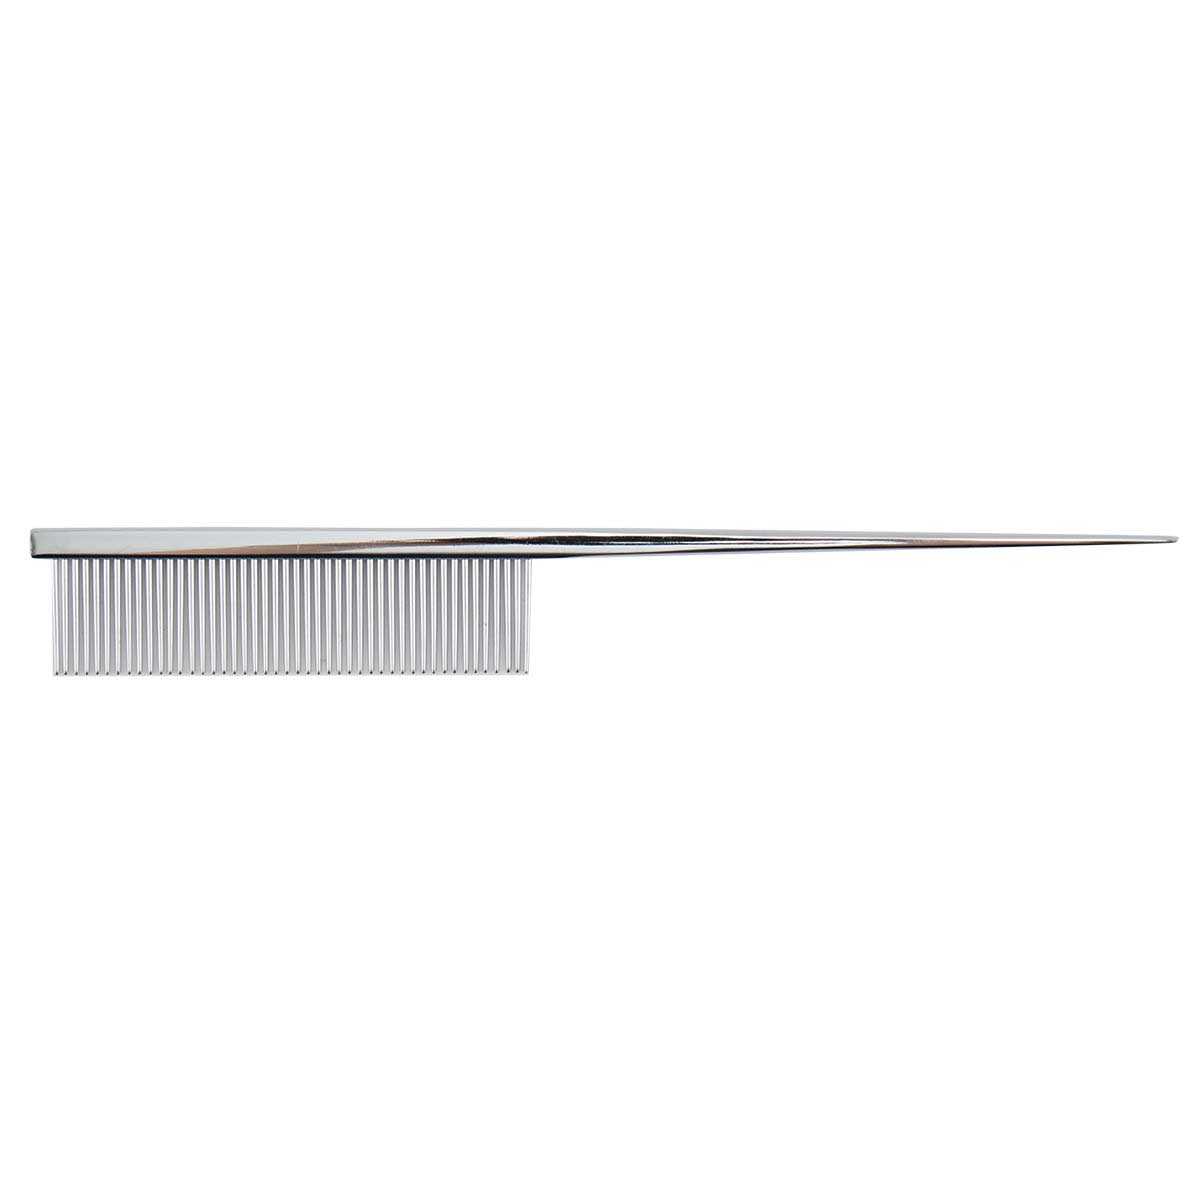 Yento by Paw Brothers Carbon Steel Tail Comb with 46 Pins for Grooming